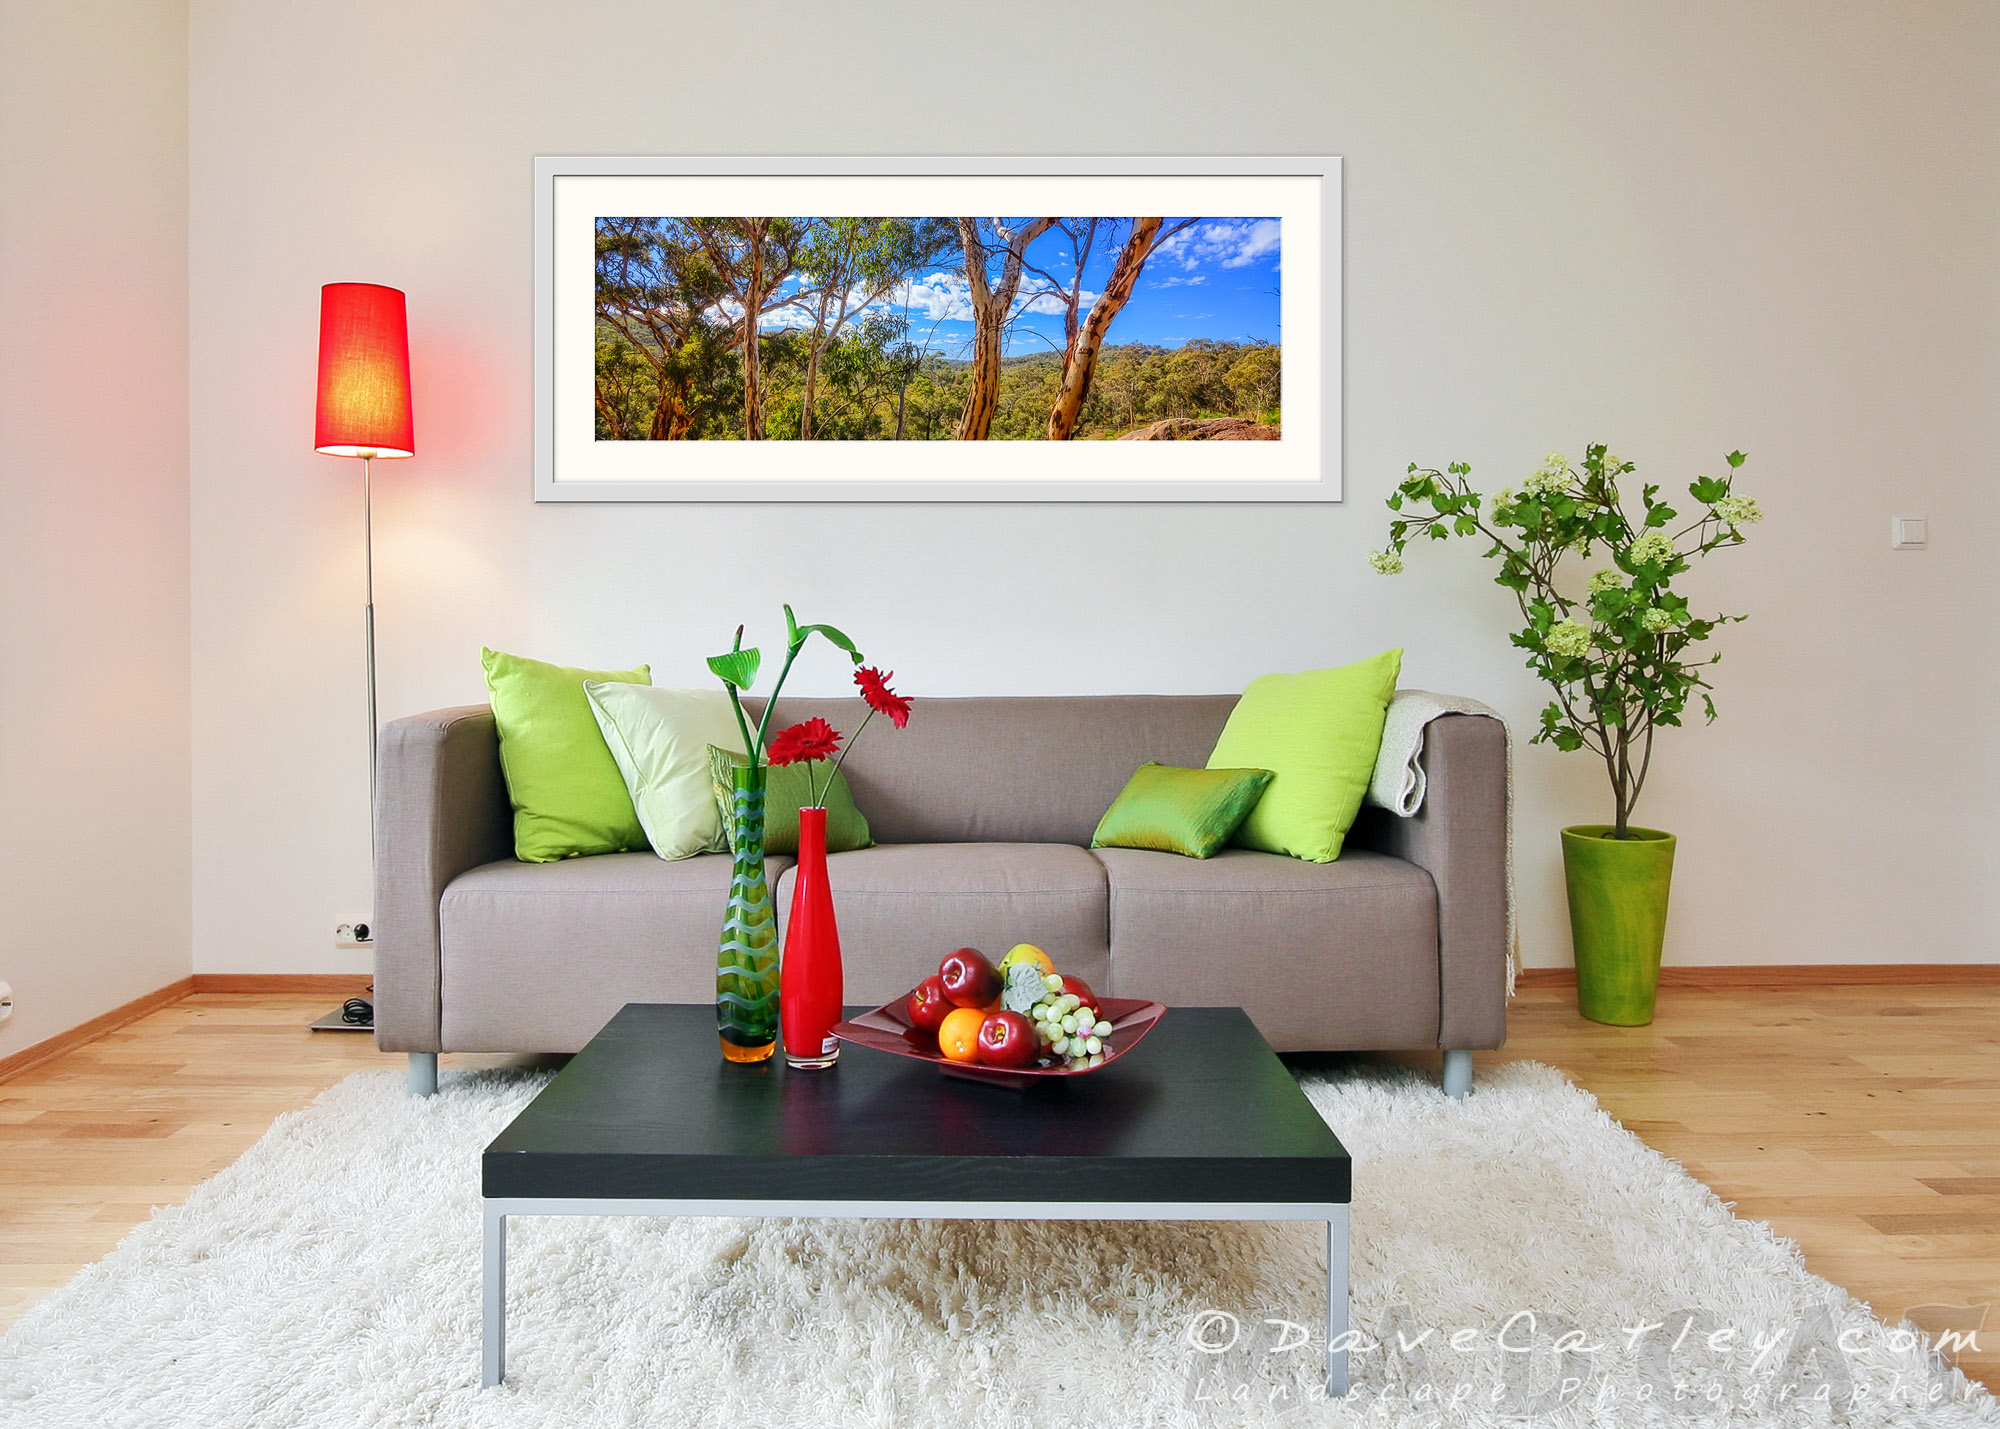 Turn Your Walls into Windows, John Forrest National Park, Perth - Western Australian Landscape Photography